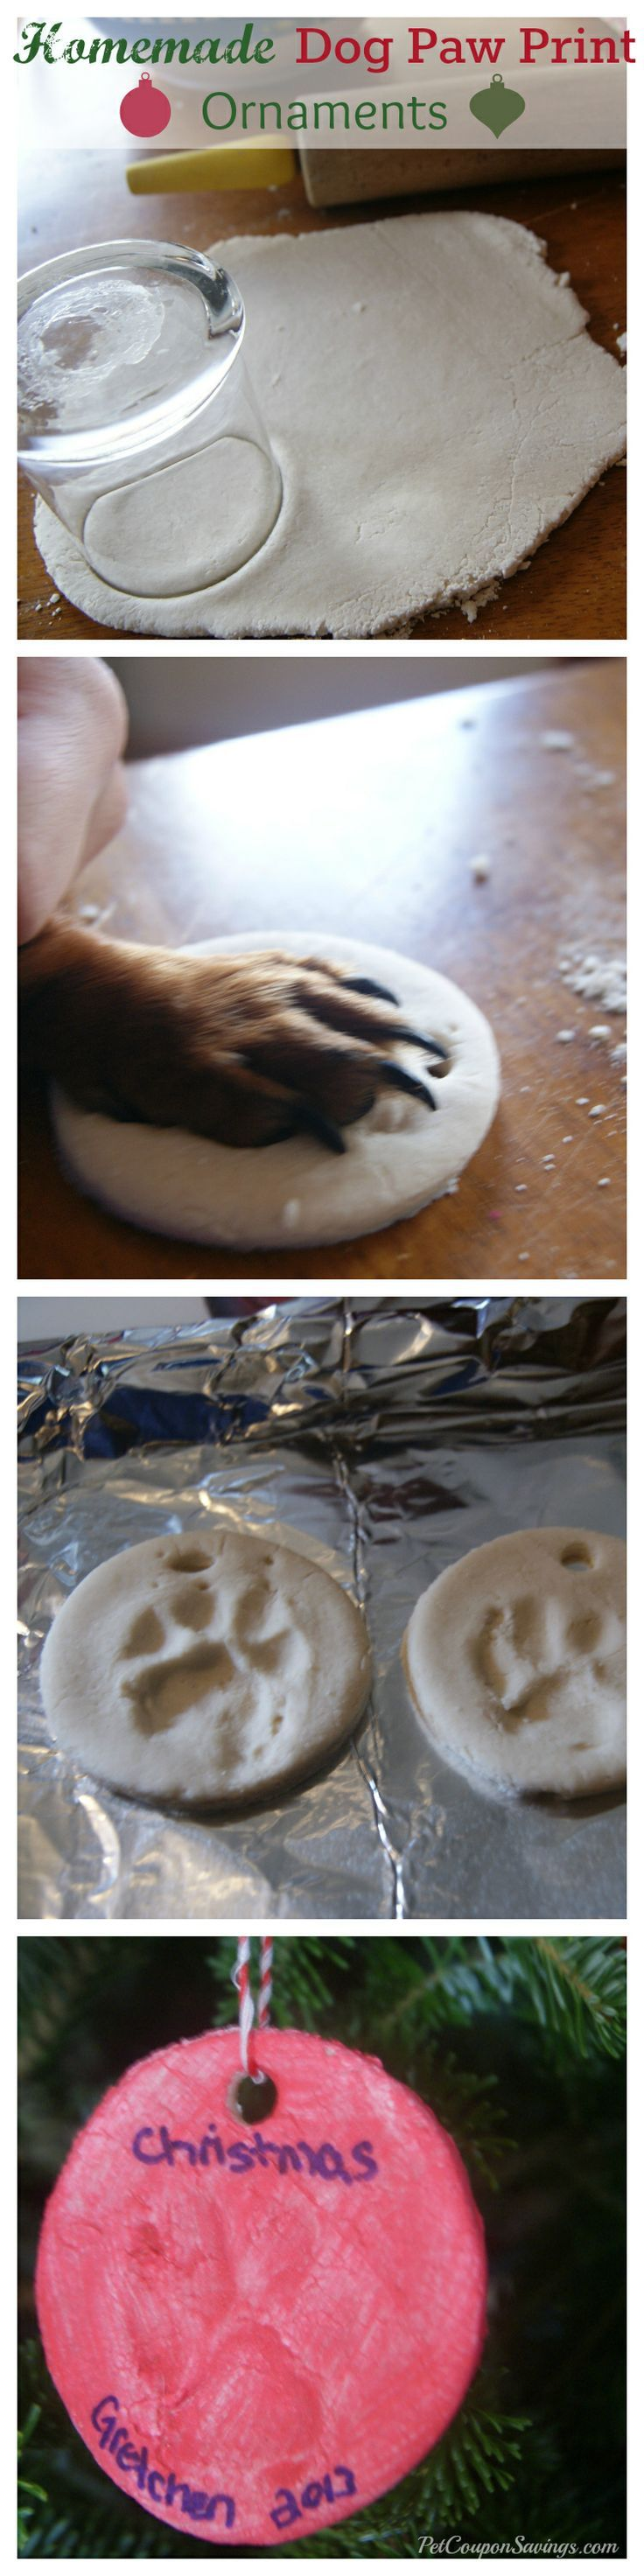 Homemade Dog Paw Print -